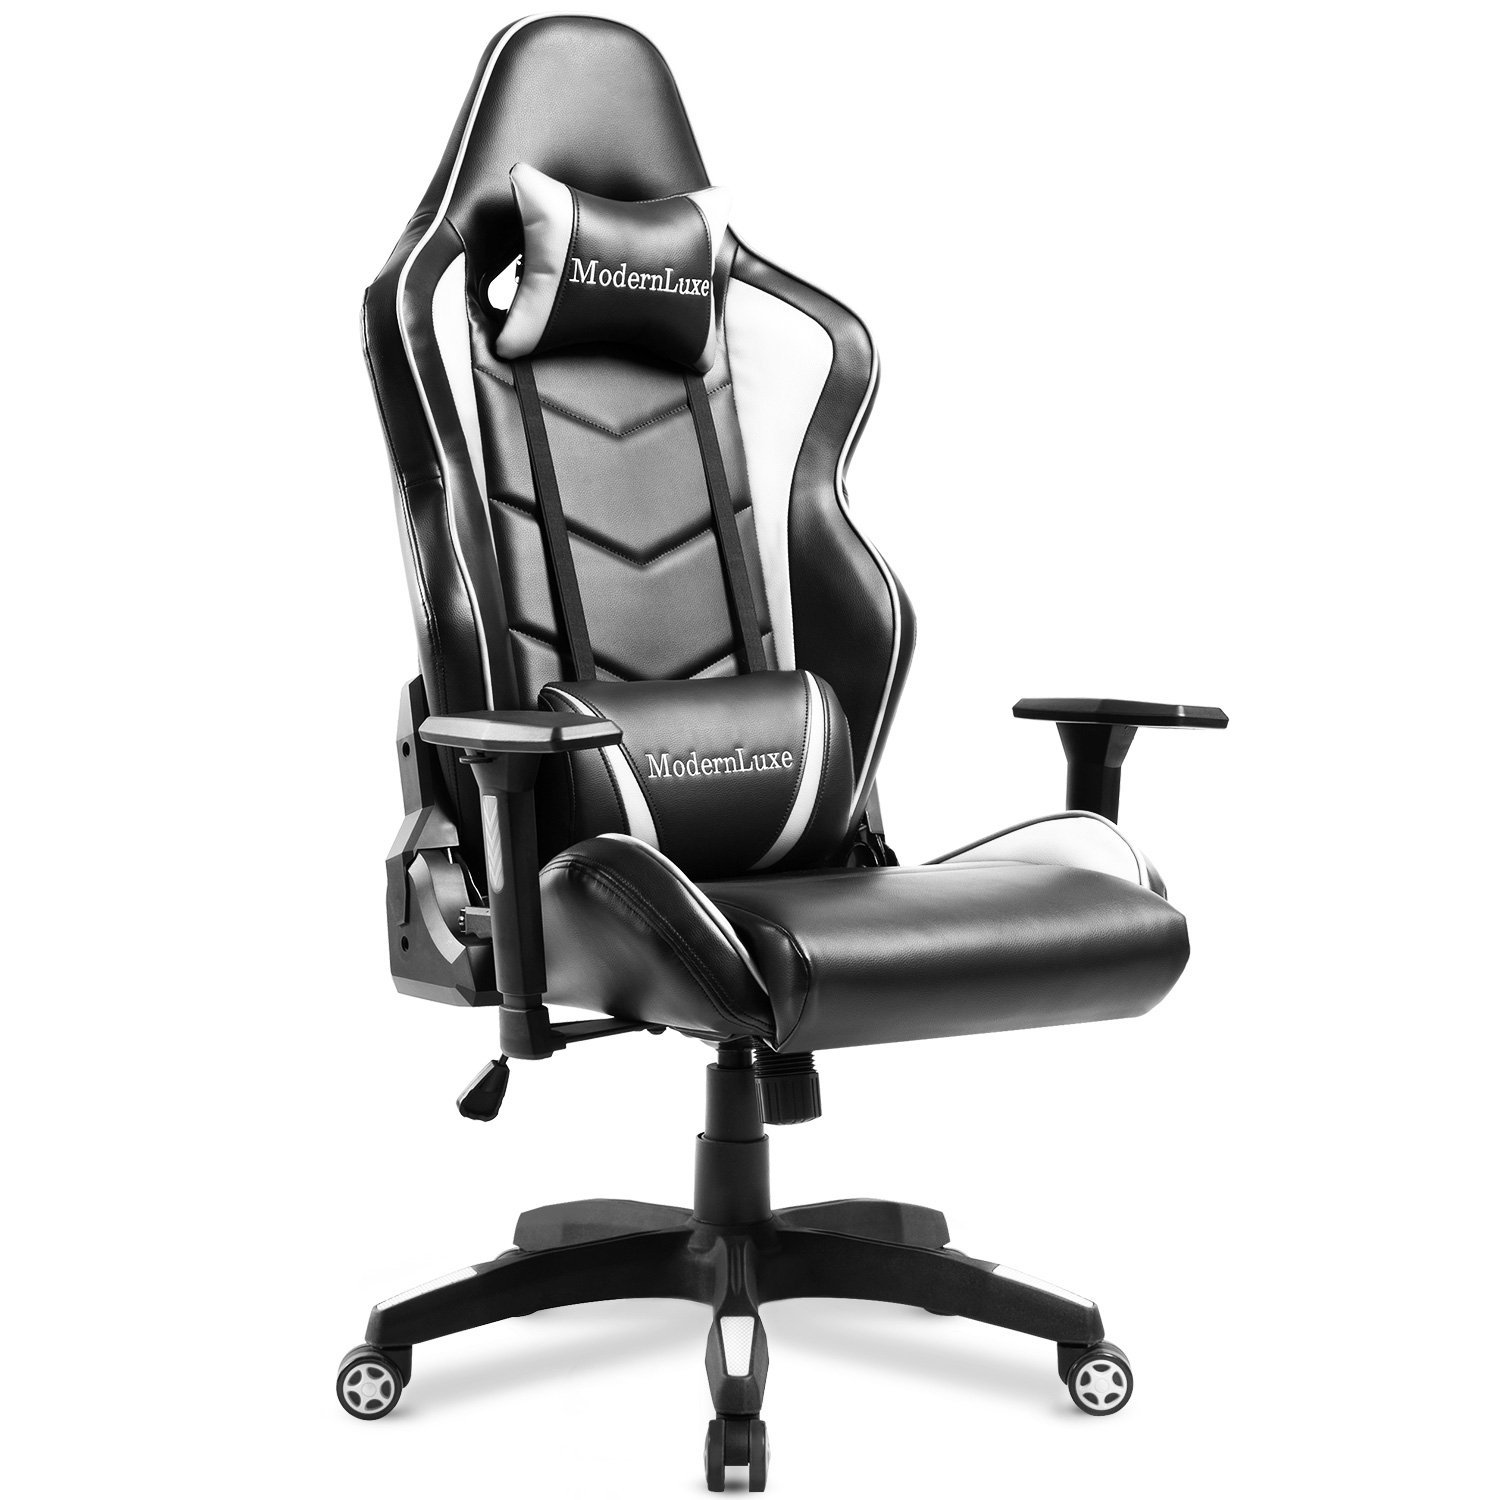 modernluxe gaming chair high back office chair lumbar support ergonomic with headrest. Black Bedroom Furniture Sets. Home Design Ideas